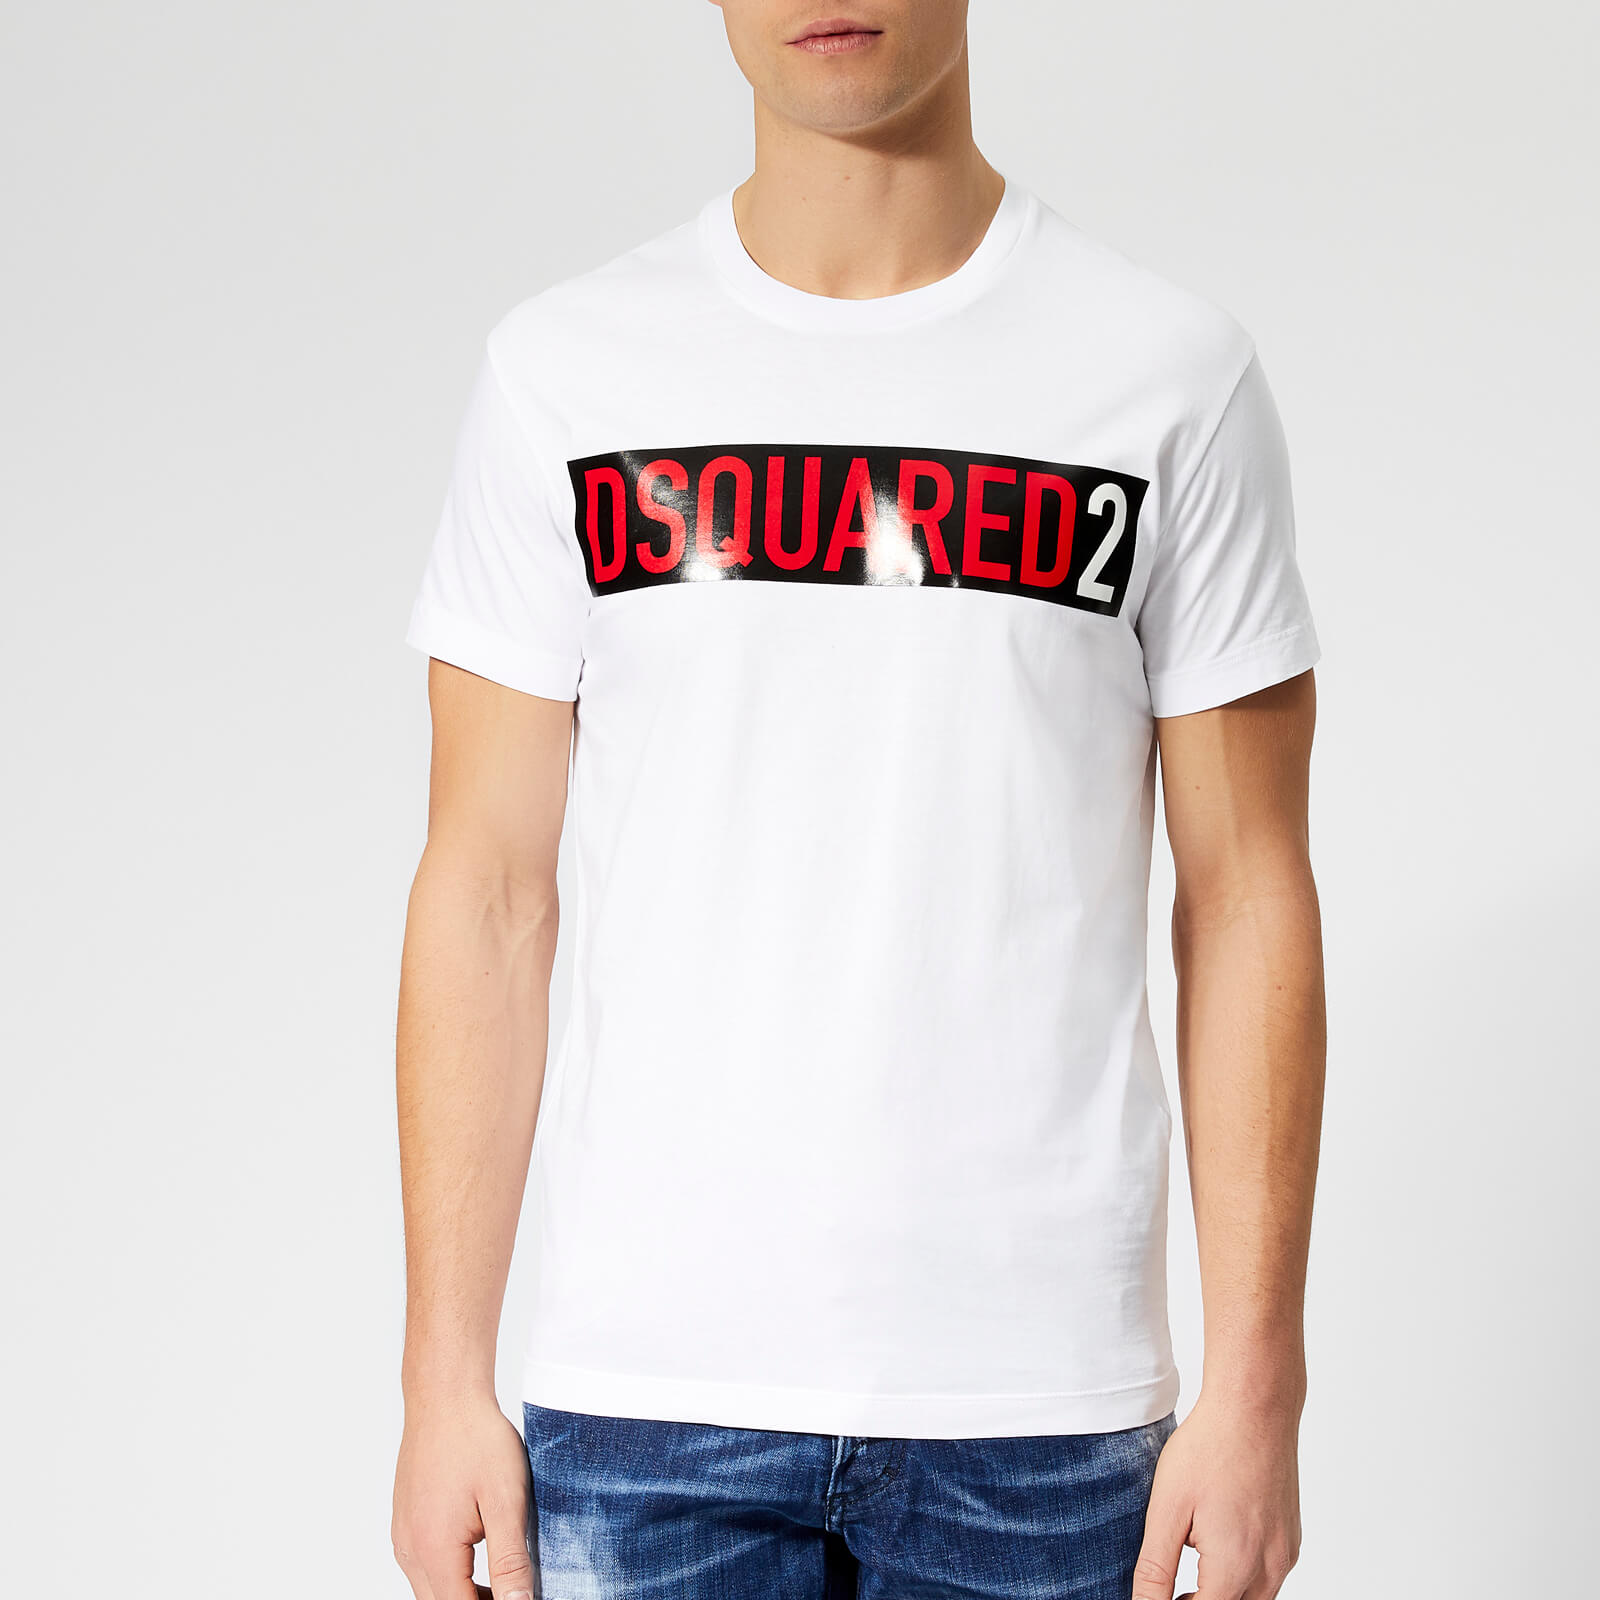 2189a43fe Dsquared2 Men's Box Print T-Shirt - White - Free UK Delivery over £50